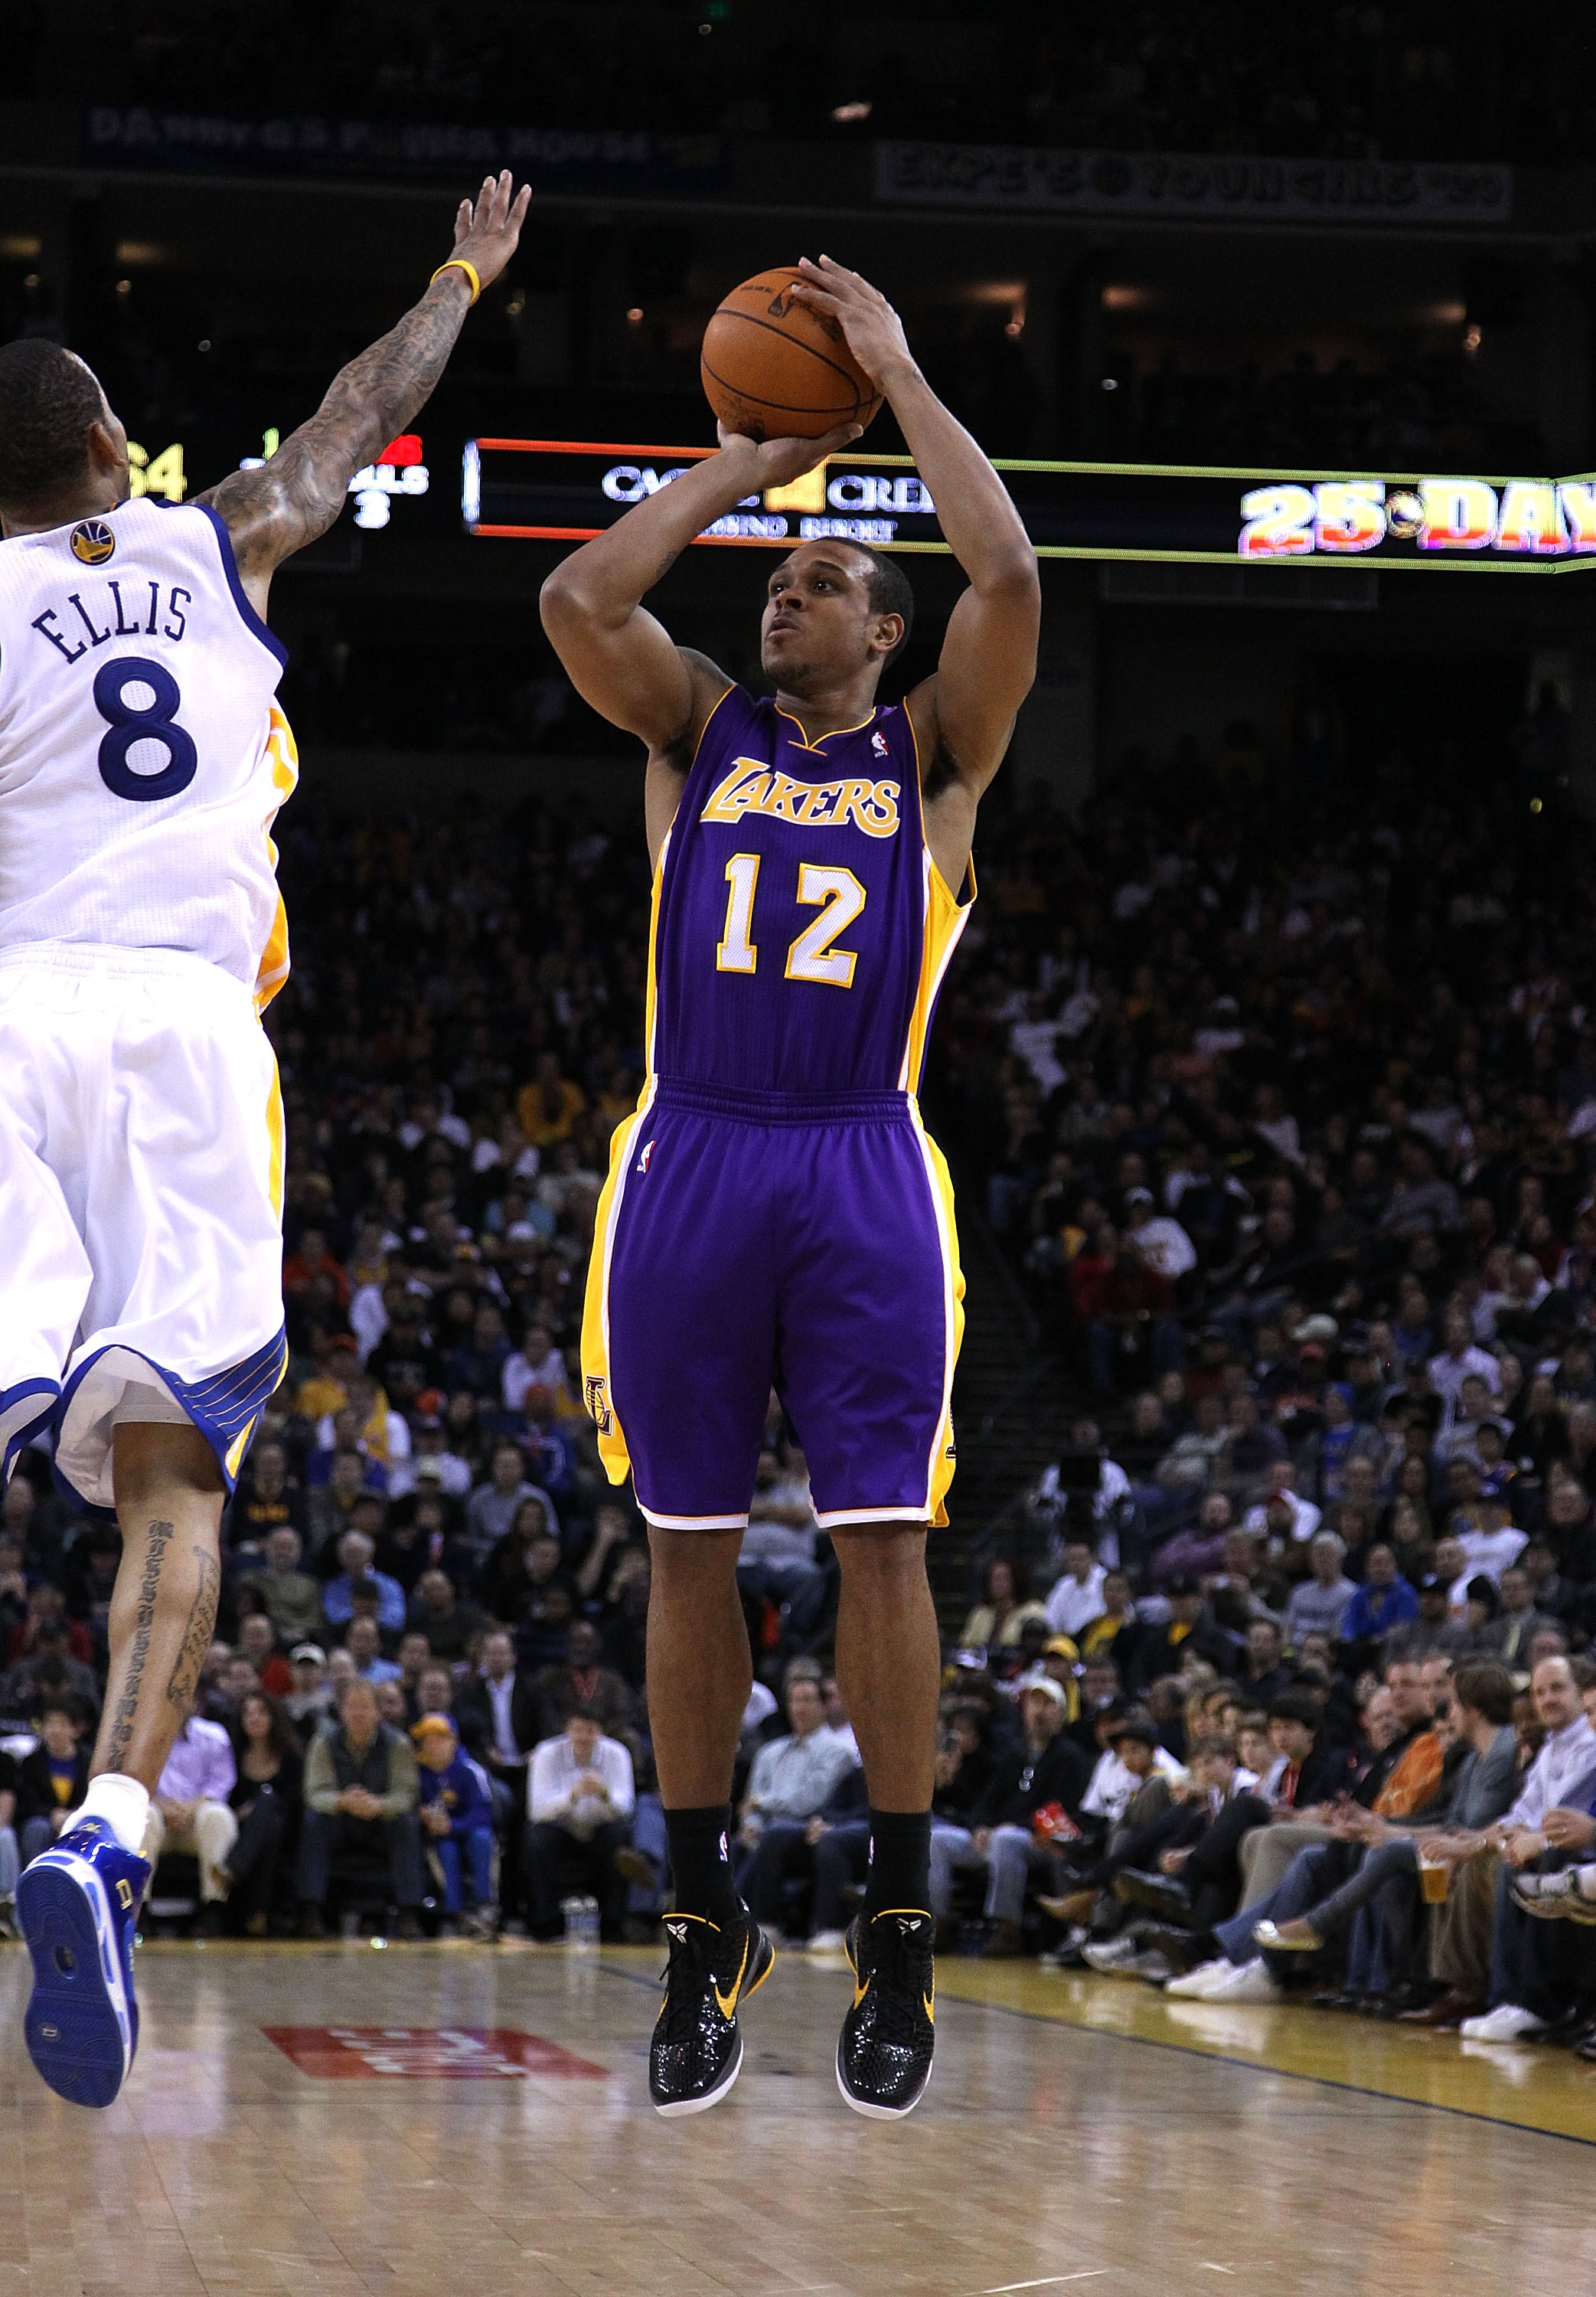 OAKLAND, CA - JANUARY 12:  Shannon Brown #12 of the Los Angeles Lakers in action during their game against the Golden State Warriors at Oracle Arena on January 12, 2011 in Oakland, California. NOTE TO USER: User expressly acknowledges and agrees that, by